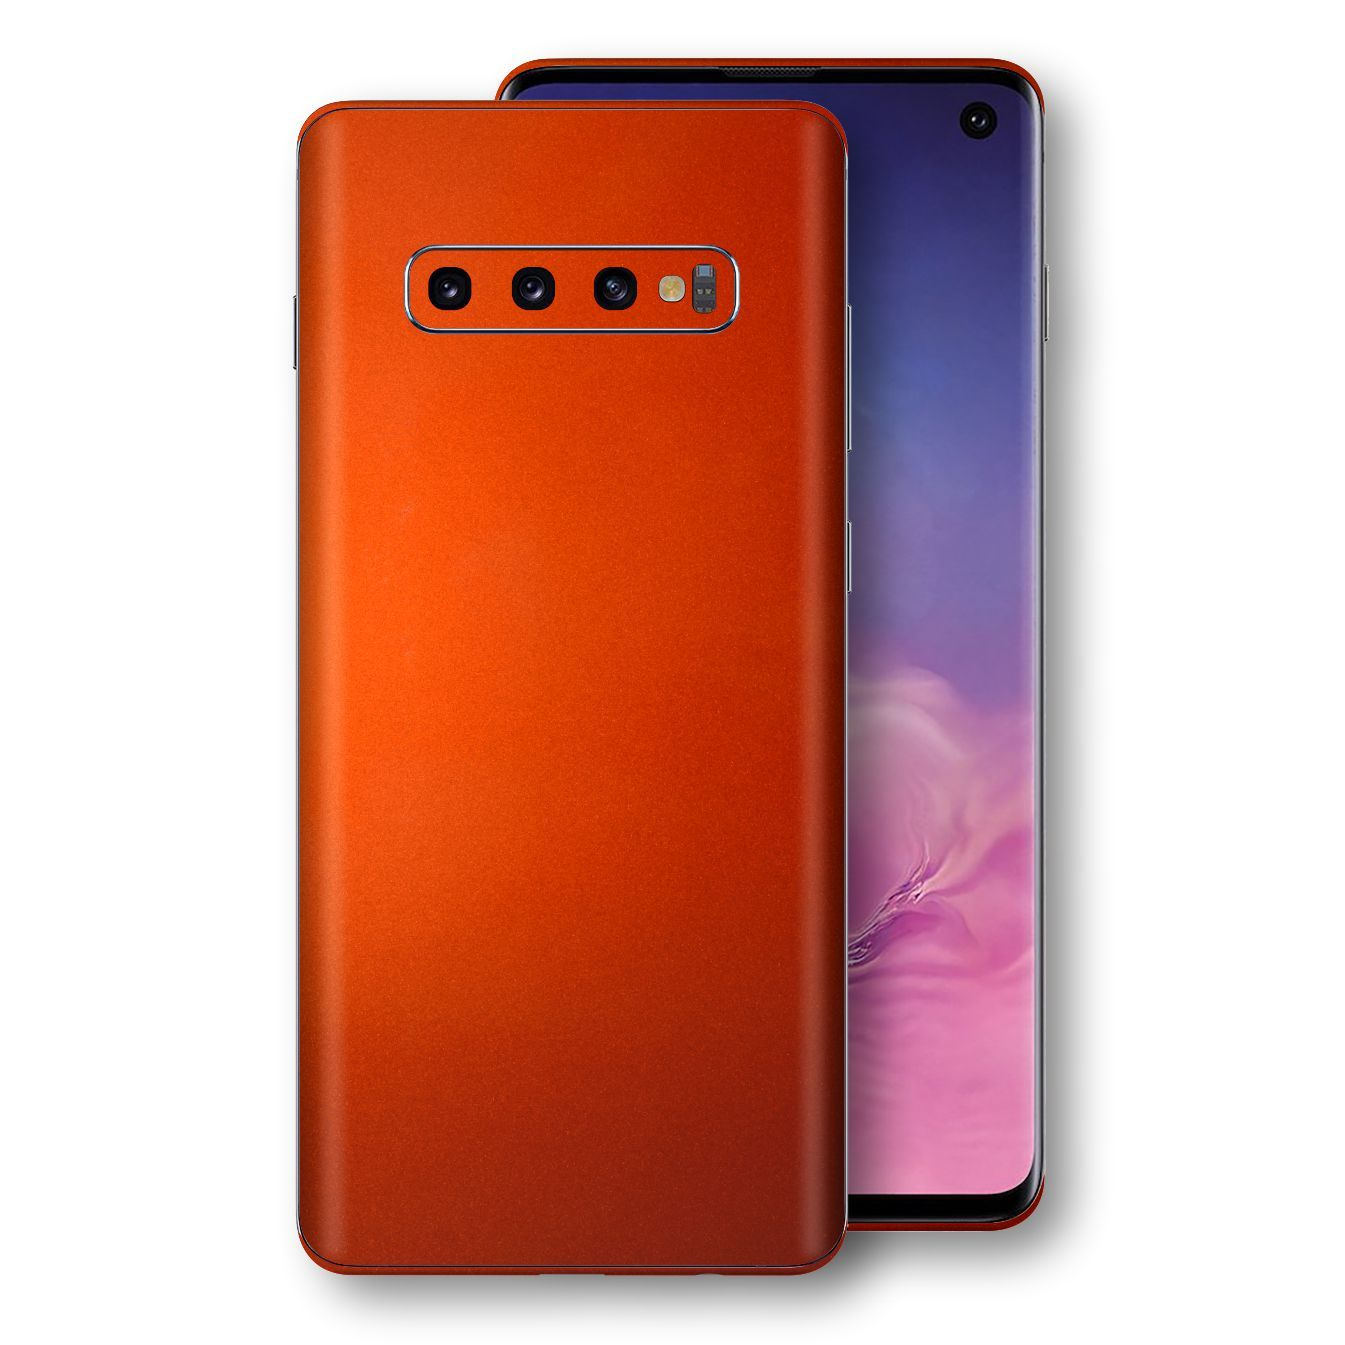 Samsung Galaxy S10 Fiery Orange Tuning Metallic Skin, Decal, Wrap, Protector, Cover by EasySkinz | EasySkinz.com